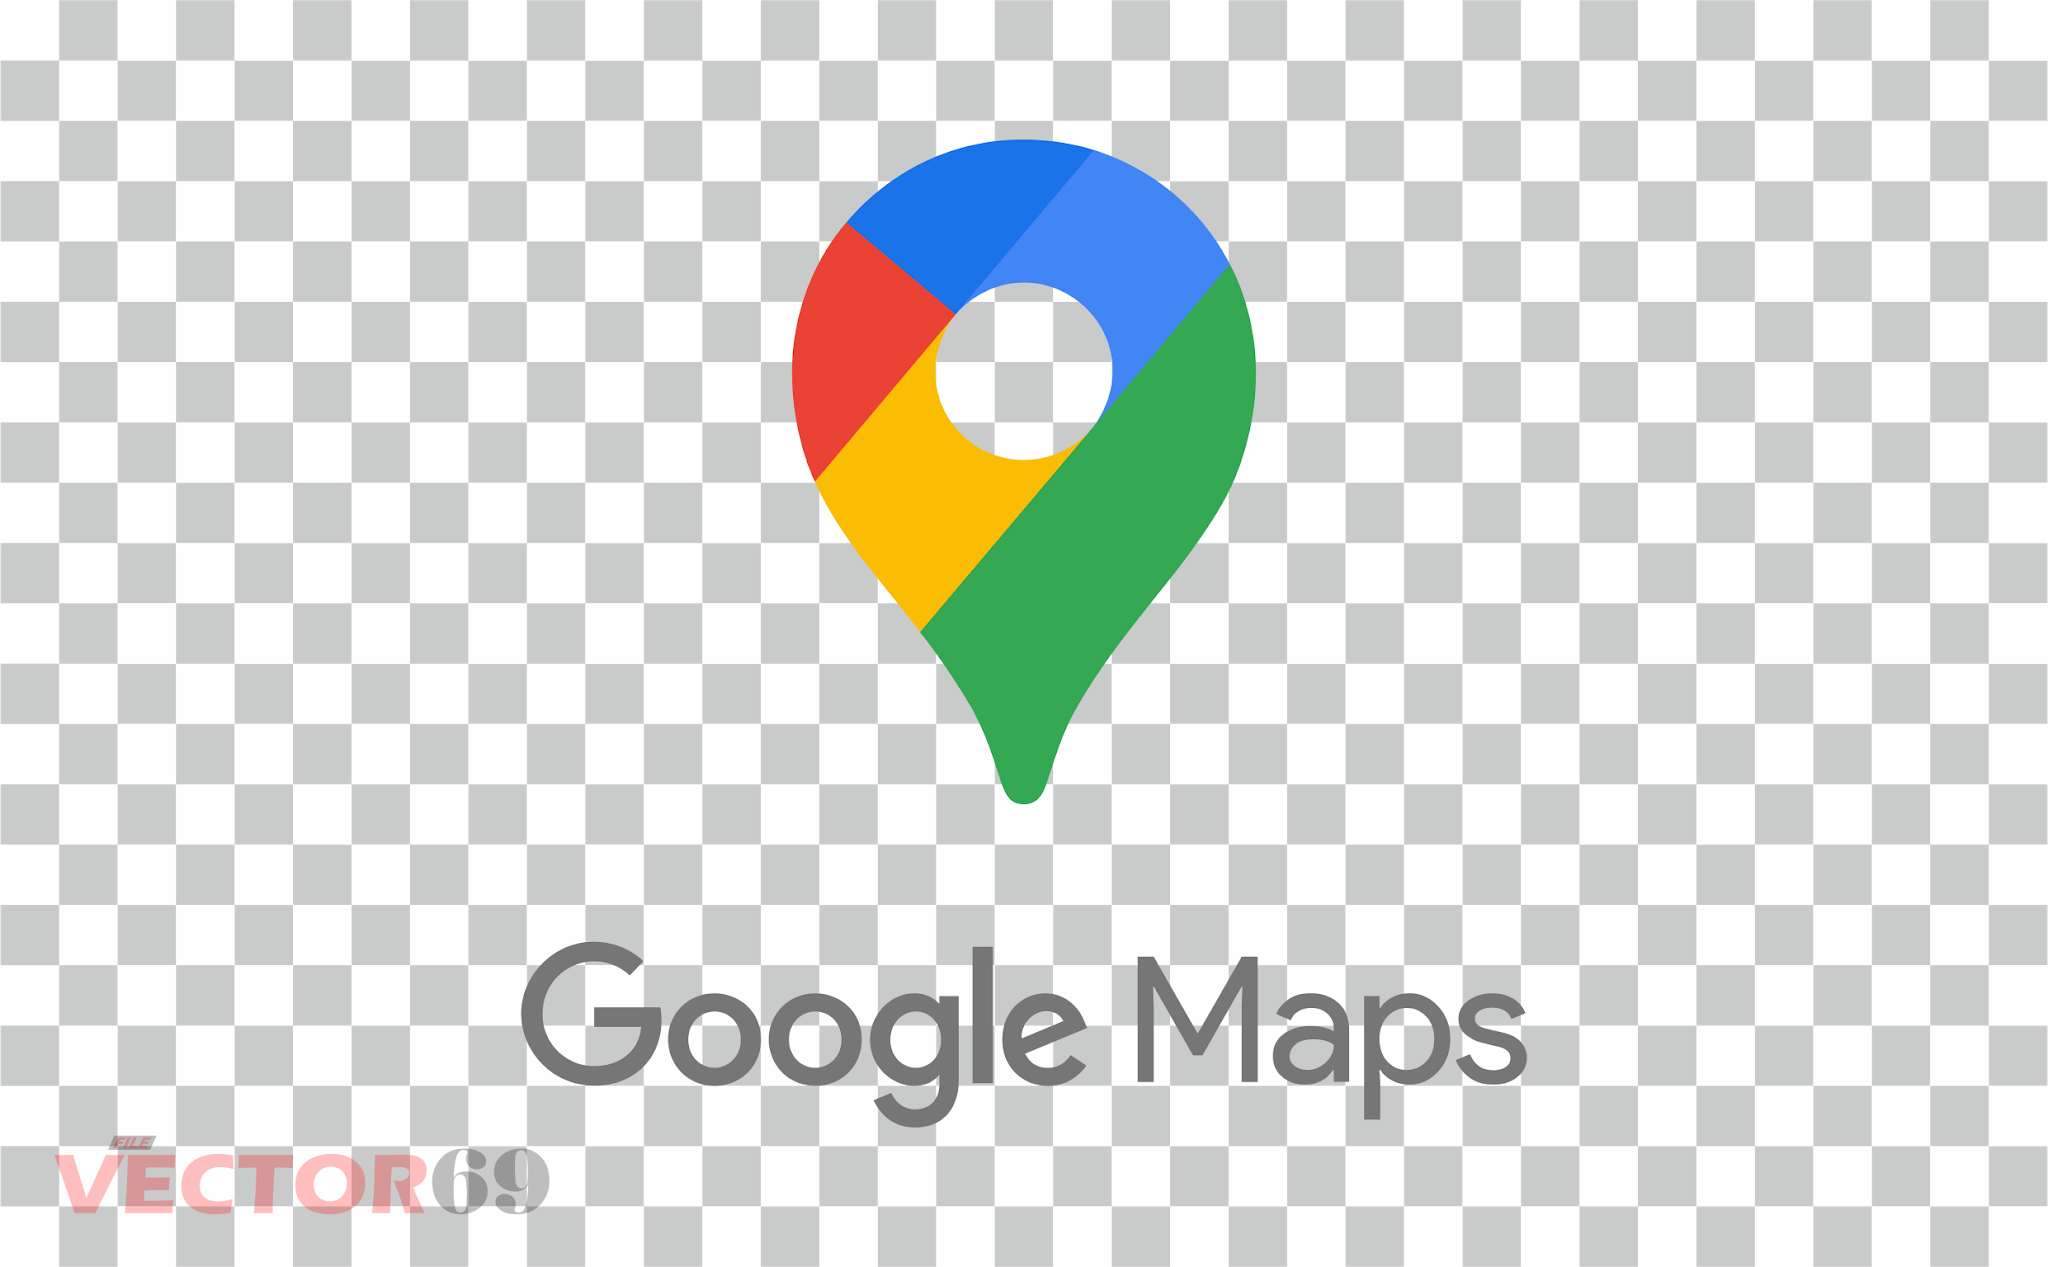 Google Maps New 2020 Logo - Download Vector File PNG (Portable Network Graphics)